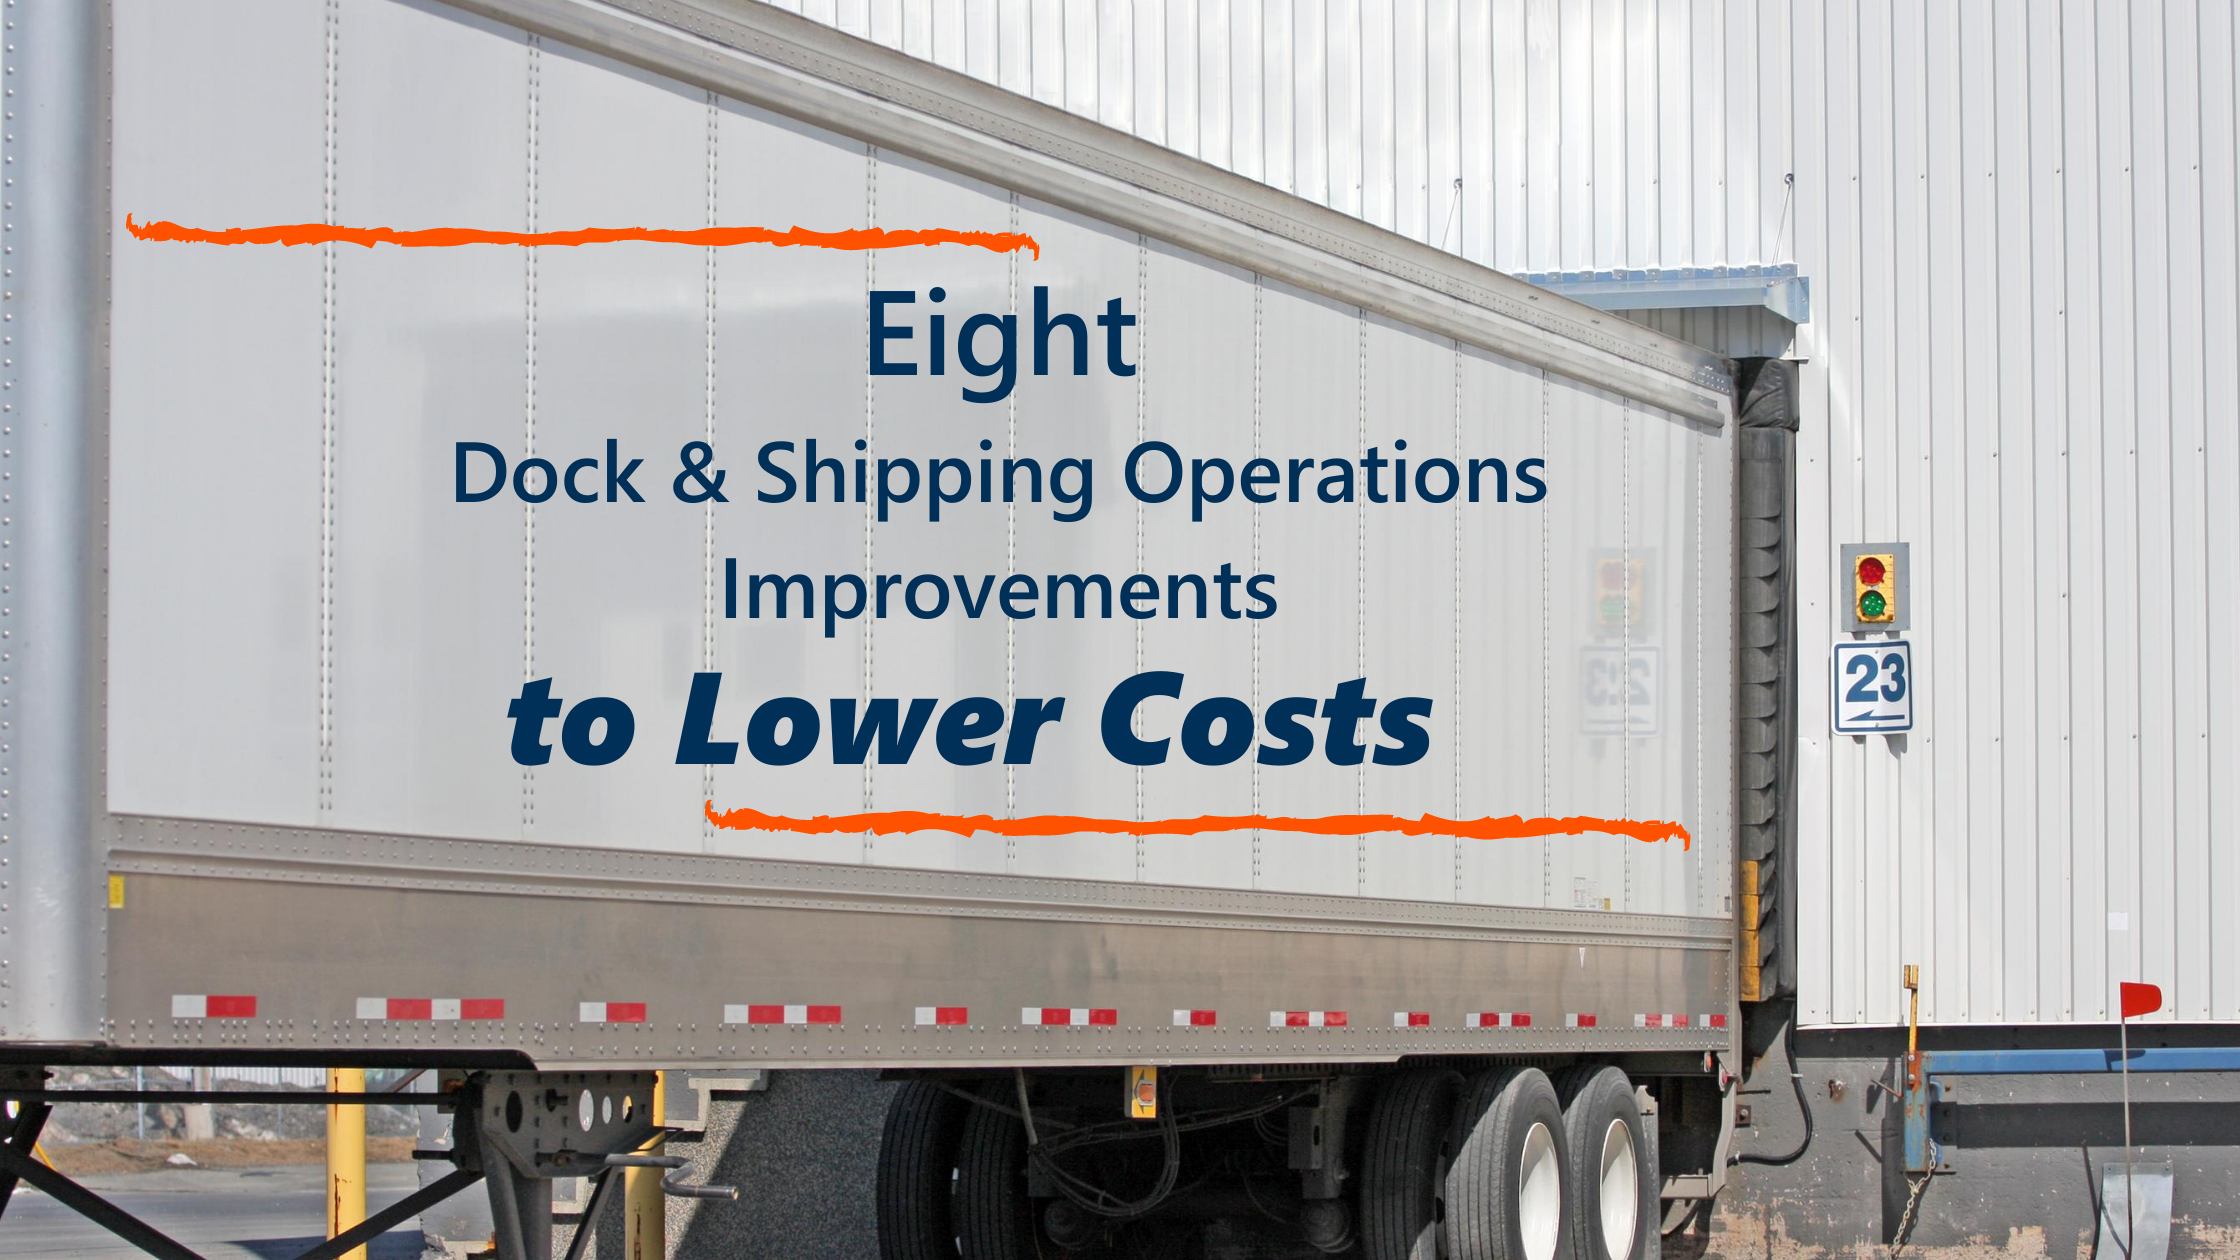 8-dock-and-shipping-operations-improvements-to-lower-costs-on-trailer-backed-into-loading-dock